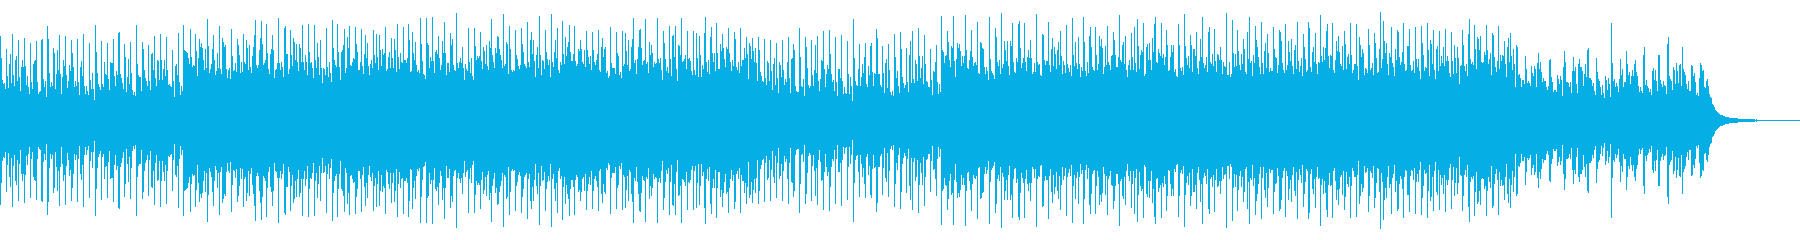 Corporate VP / CM The strength to live's reproduced waveform